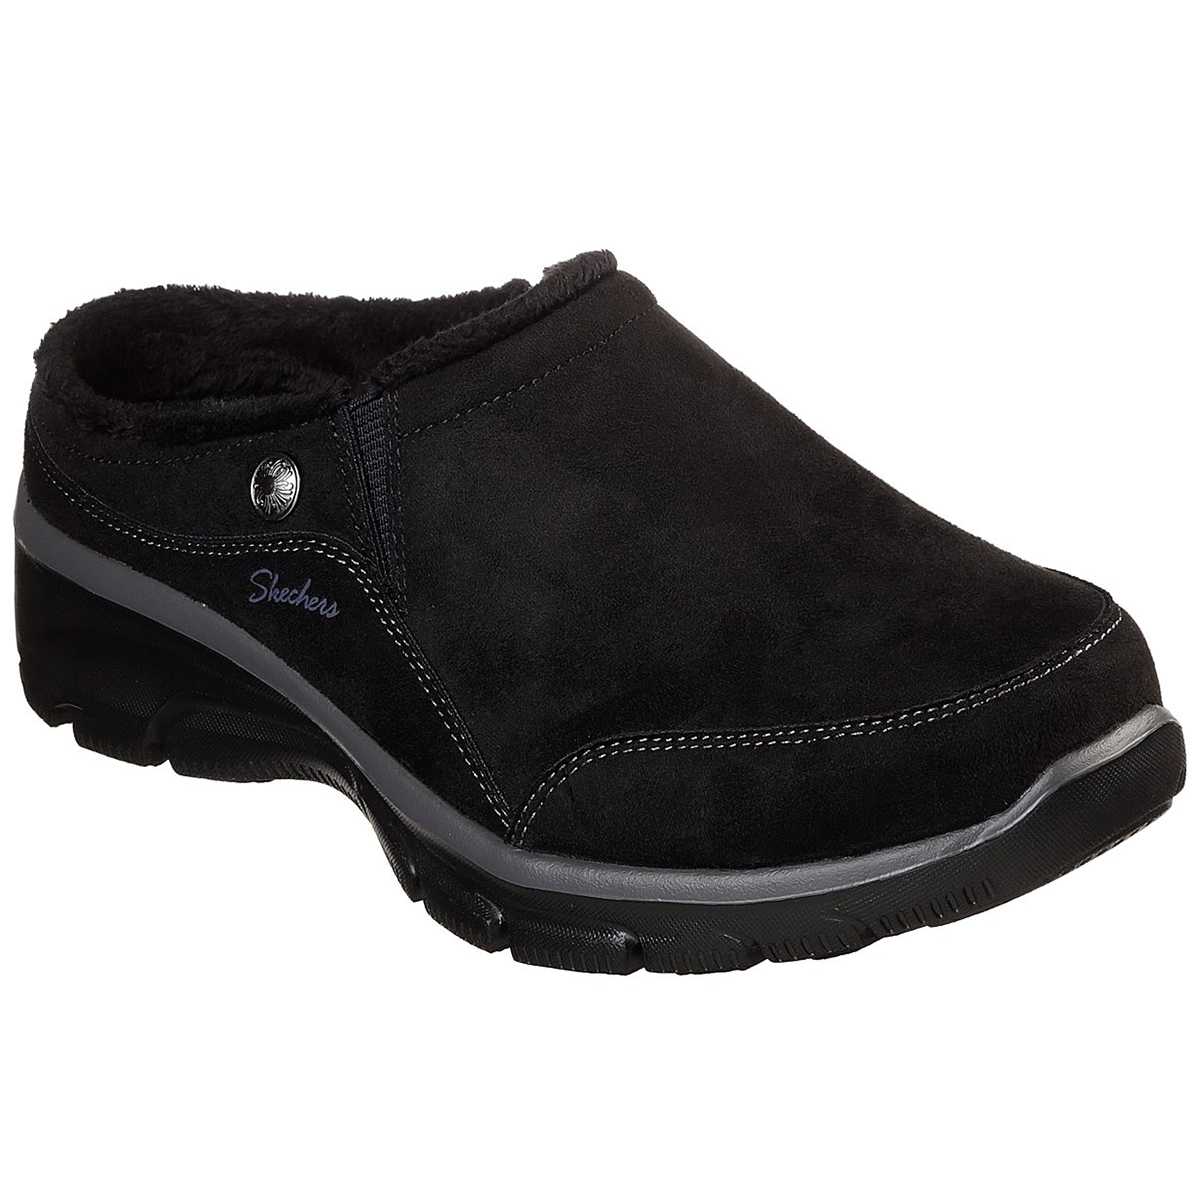 Skechers Women's Relaxed Fit Easy Going Shoes - Black, 9